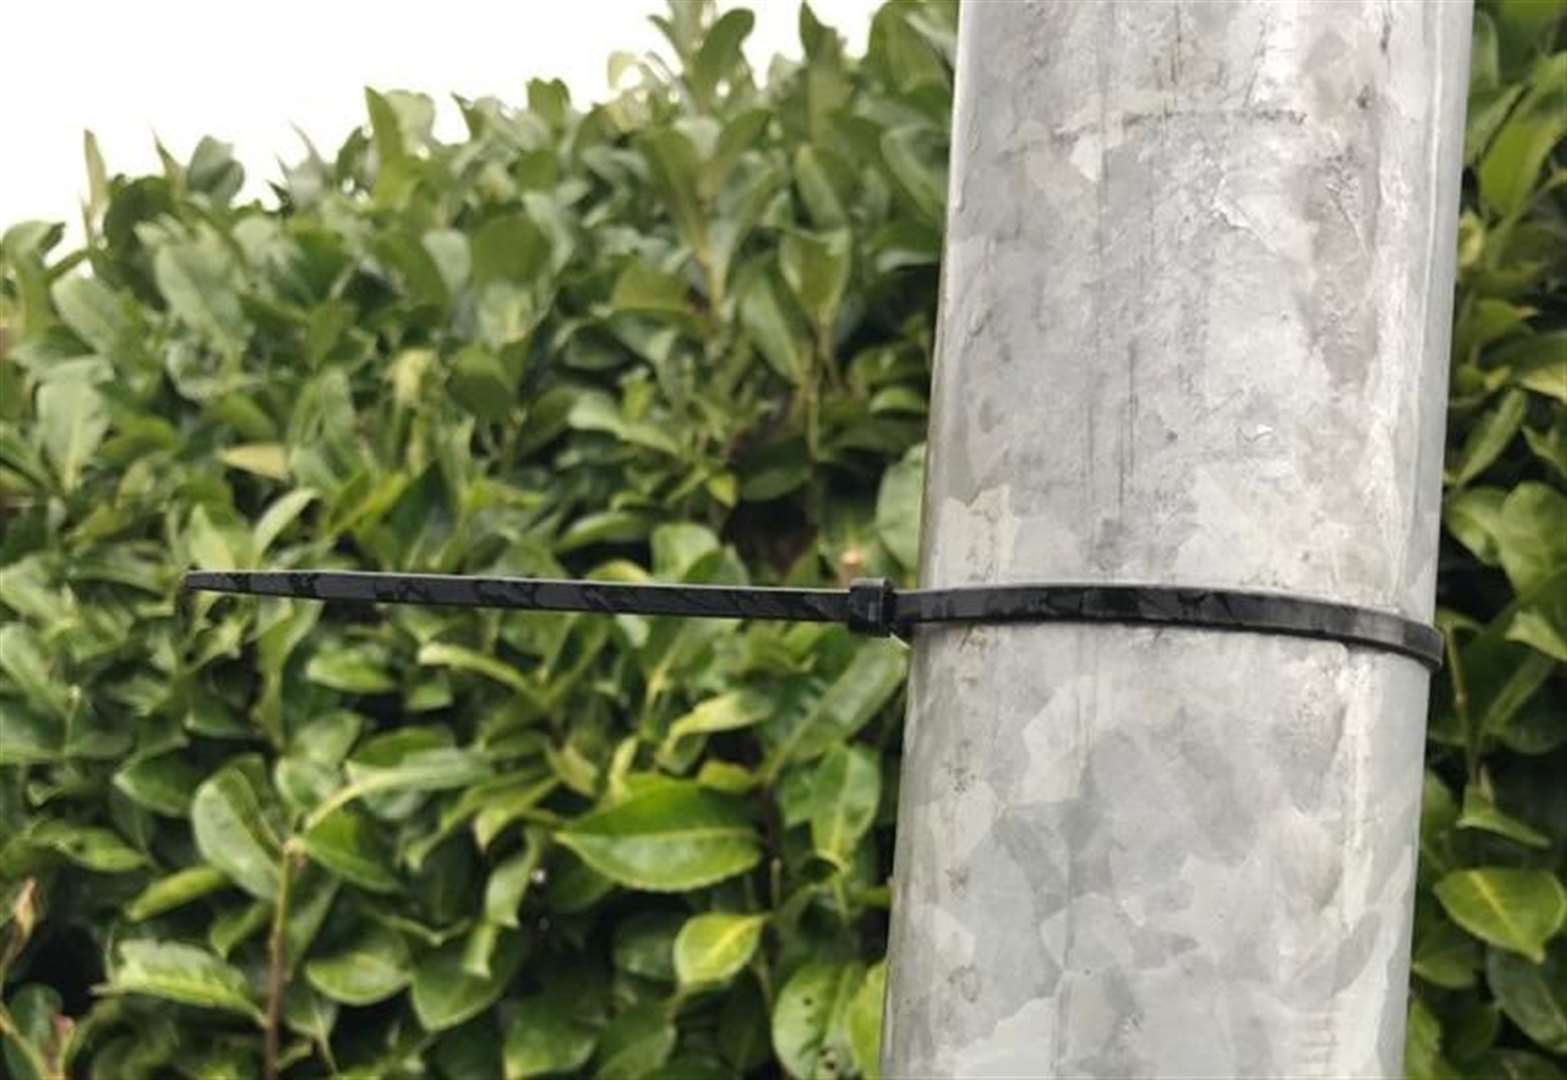 'No proof' cable tie theory is linked to dog thefts